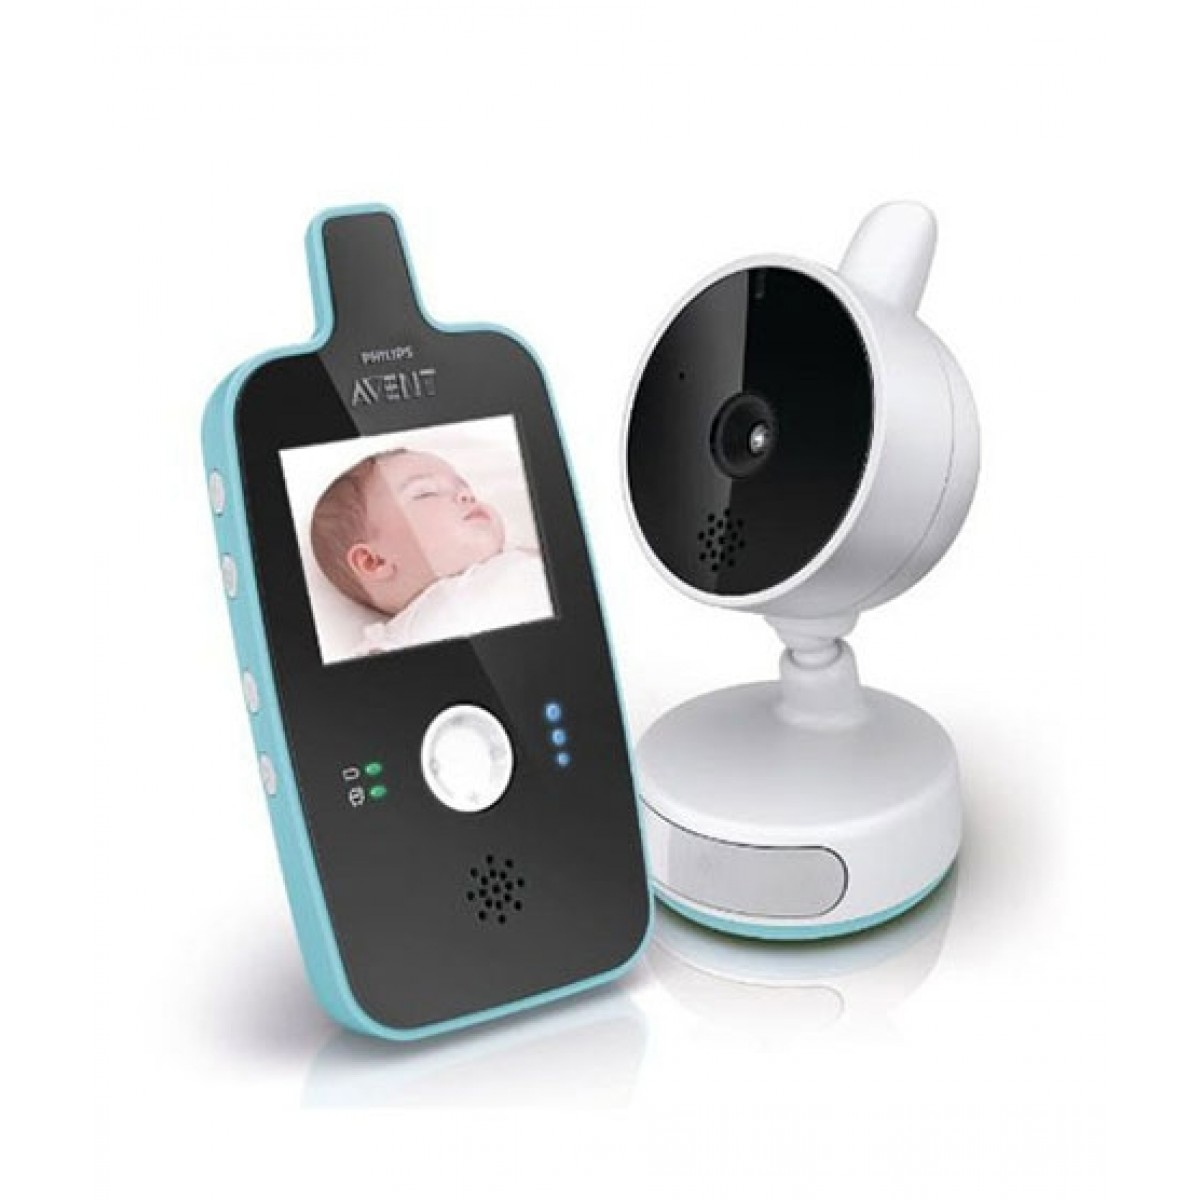 Philips Avent Digital Video Baby Monitor (SCD603/01)